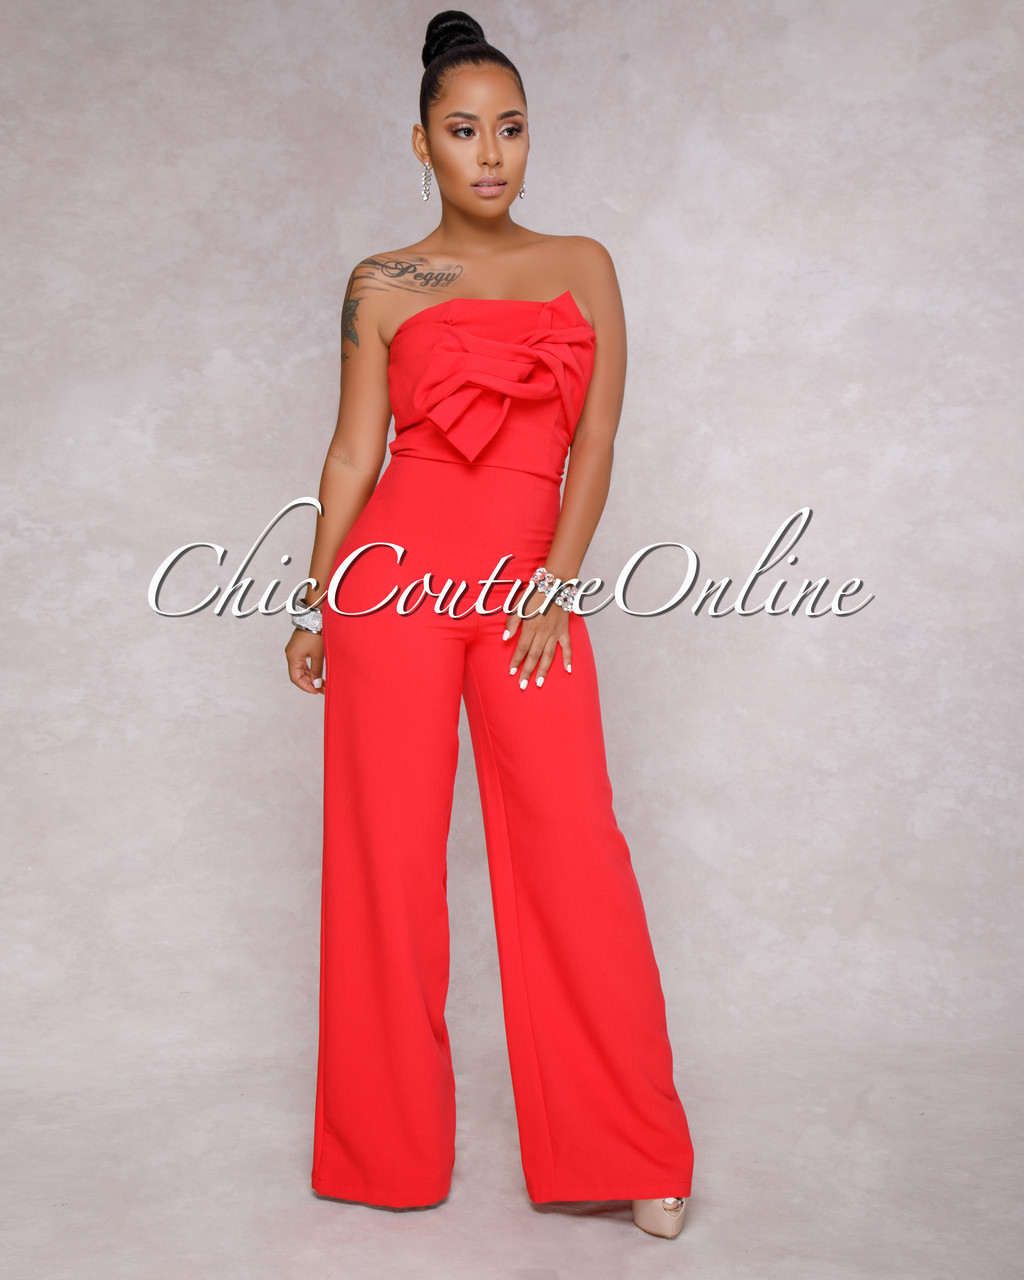 d1186739ec0 Brinley Strapless Red Knot Front Jumpsuit. Price   60.00. Image 1